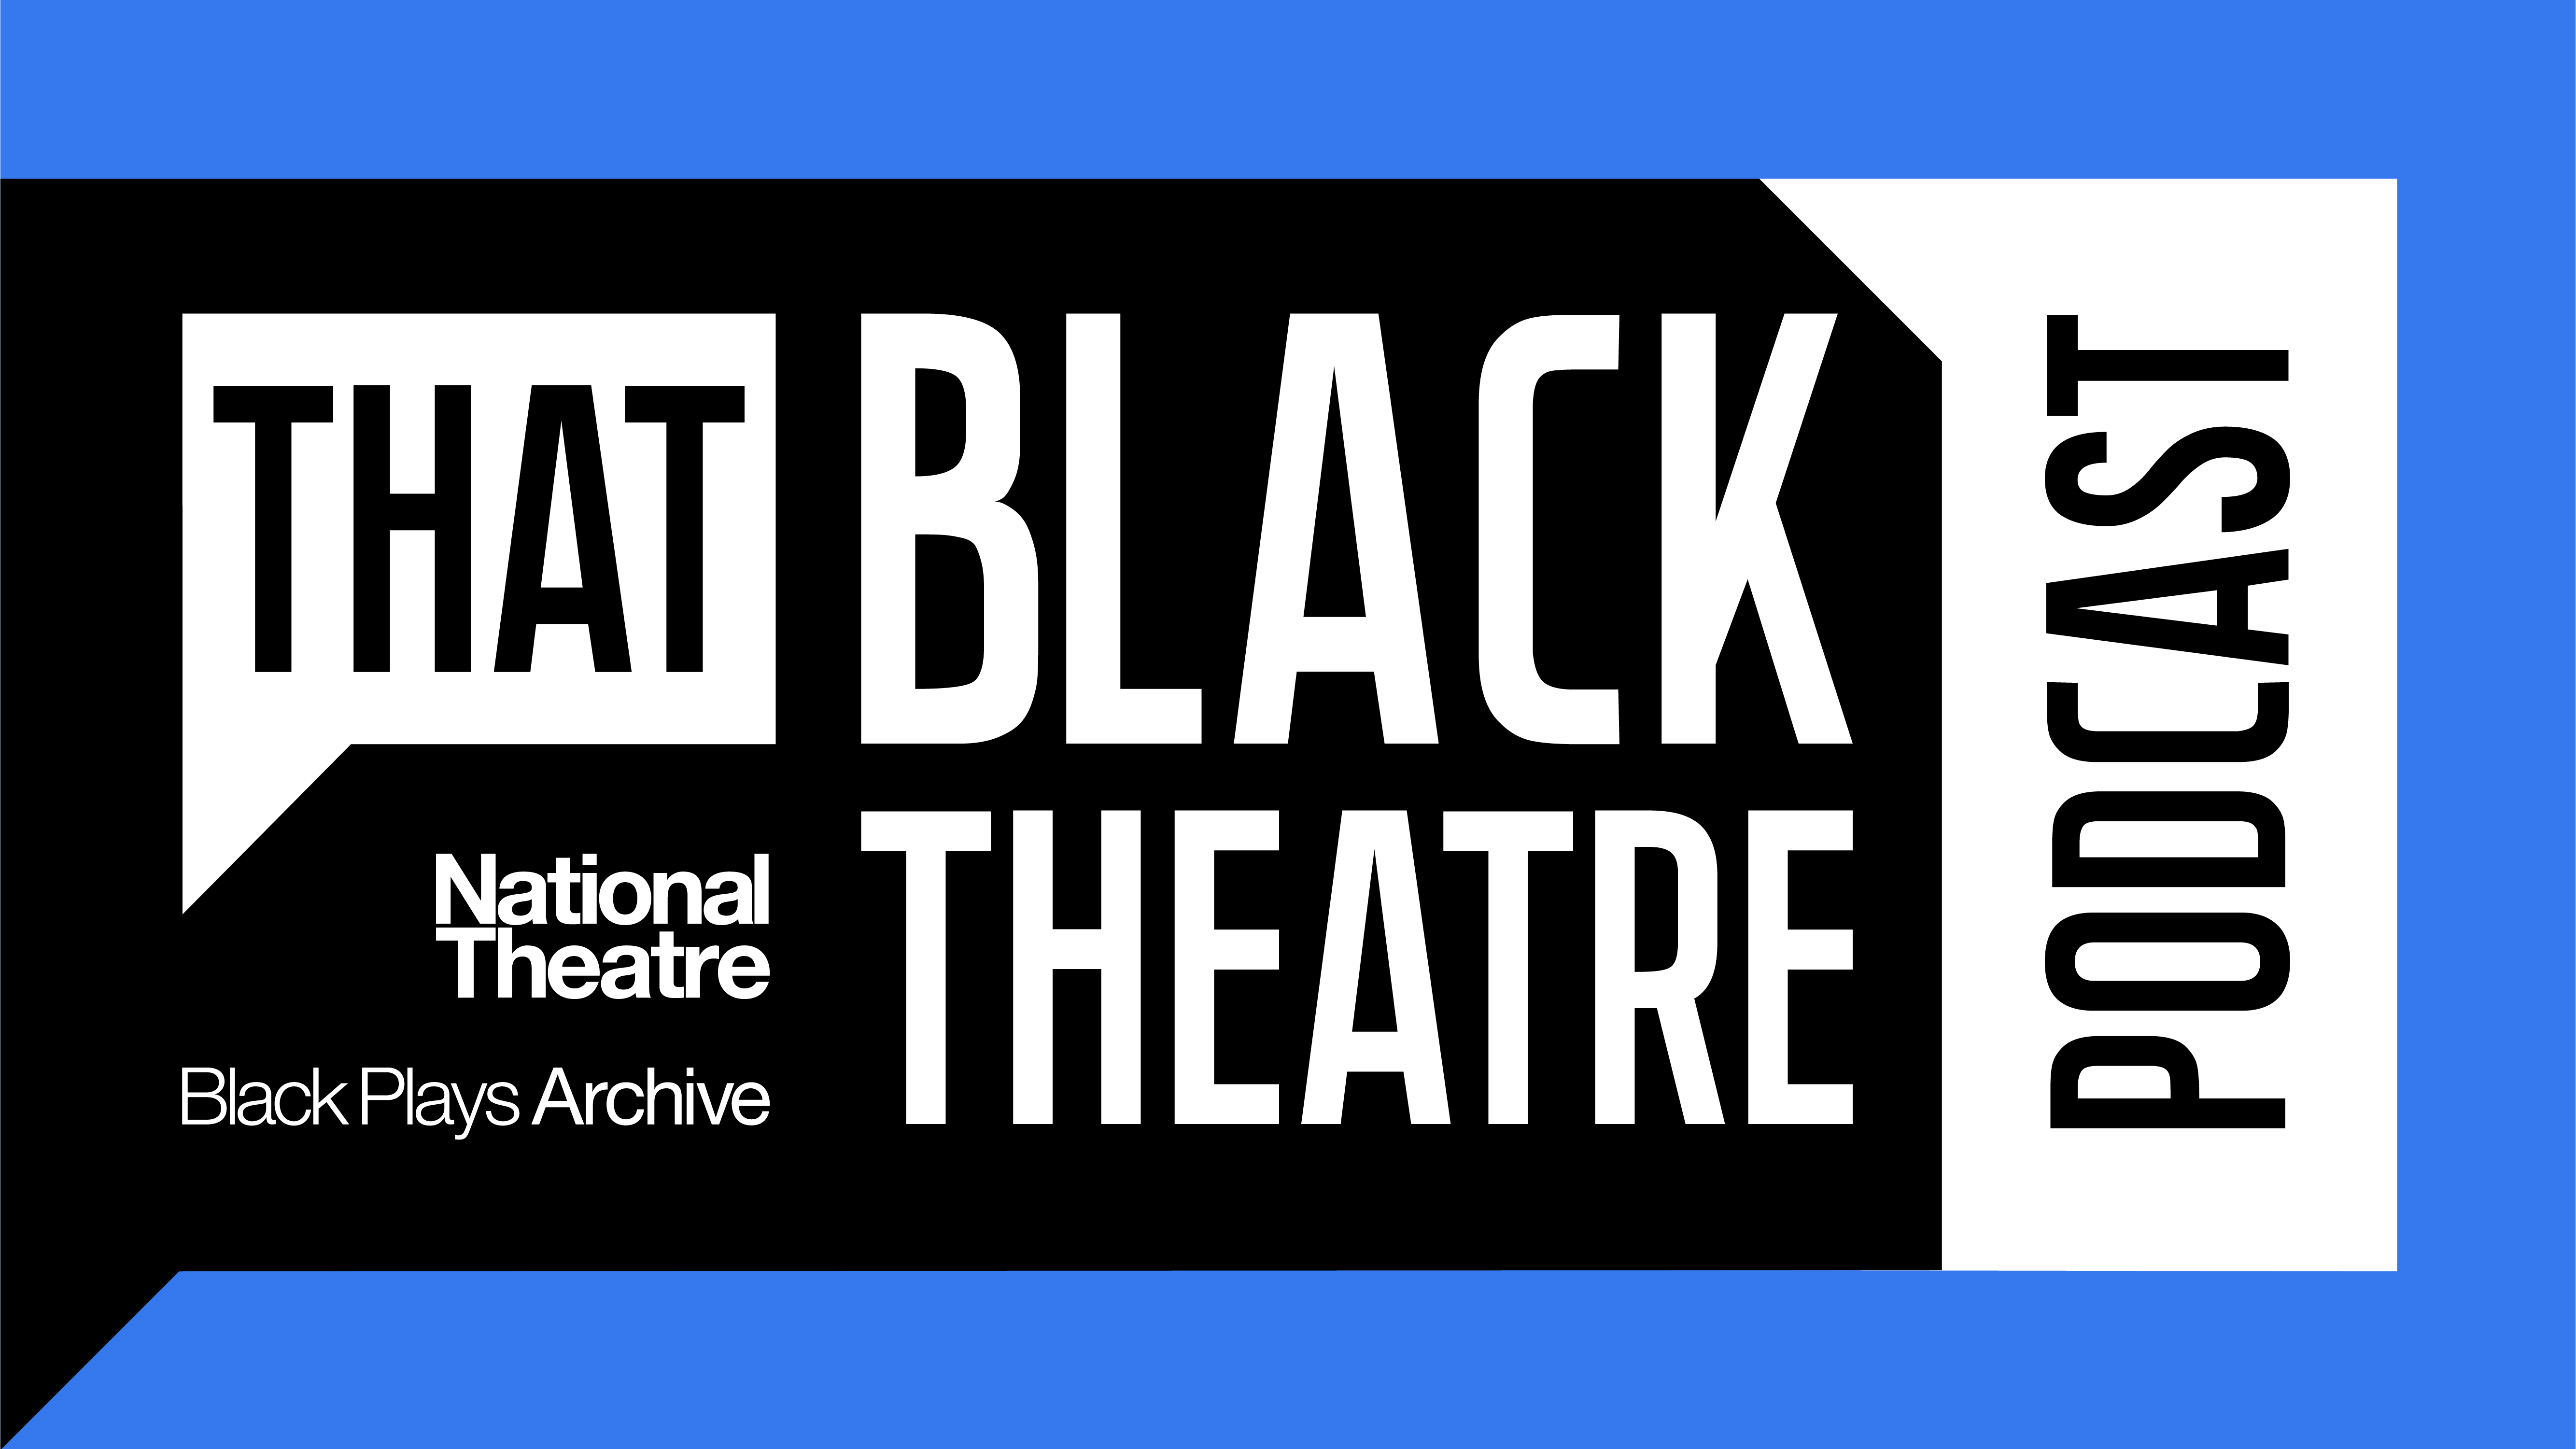 That Black Theatre Podcast, graphic in black, white and blue in the shape of a speech bubble